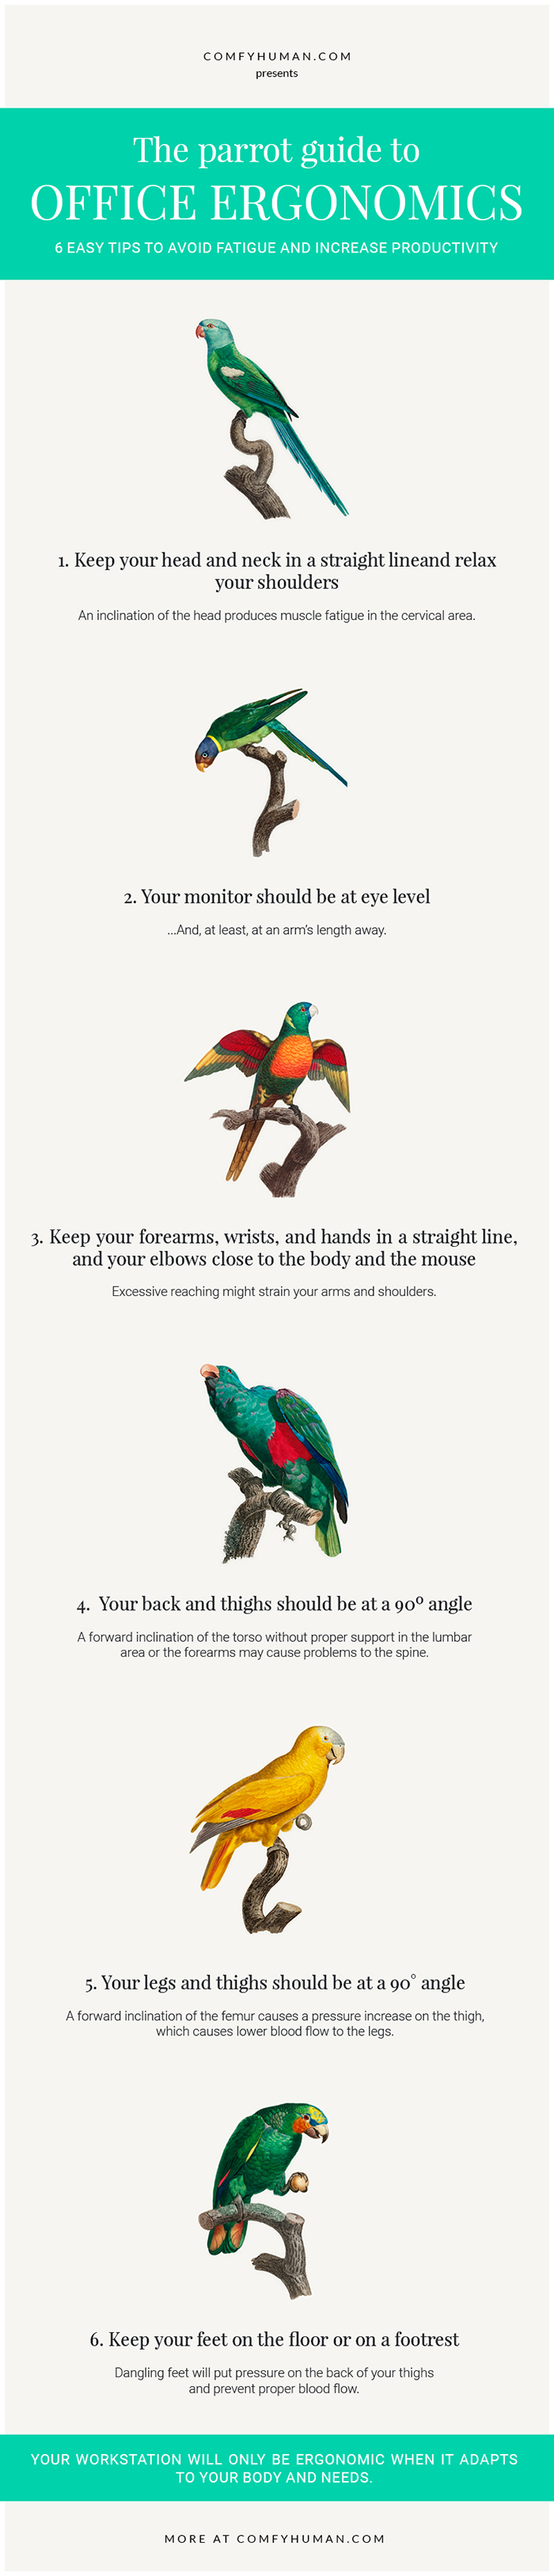 """The Parrot Guide to Office Ergonomics"" Infographic"